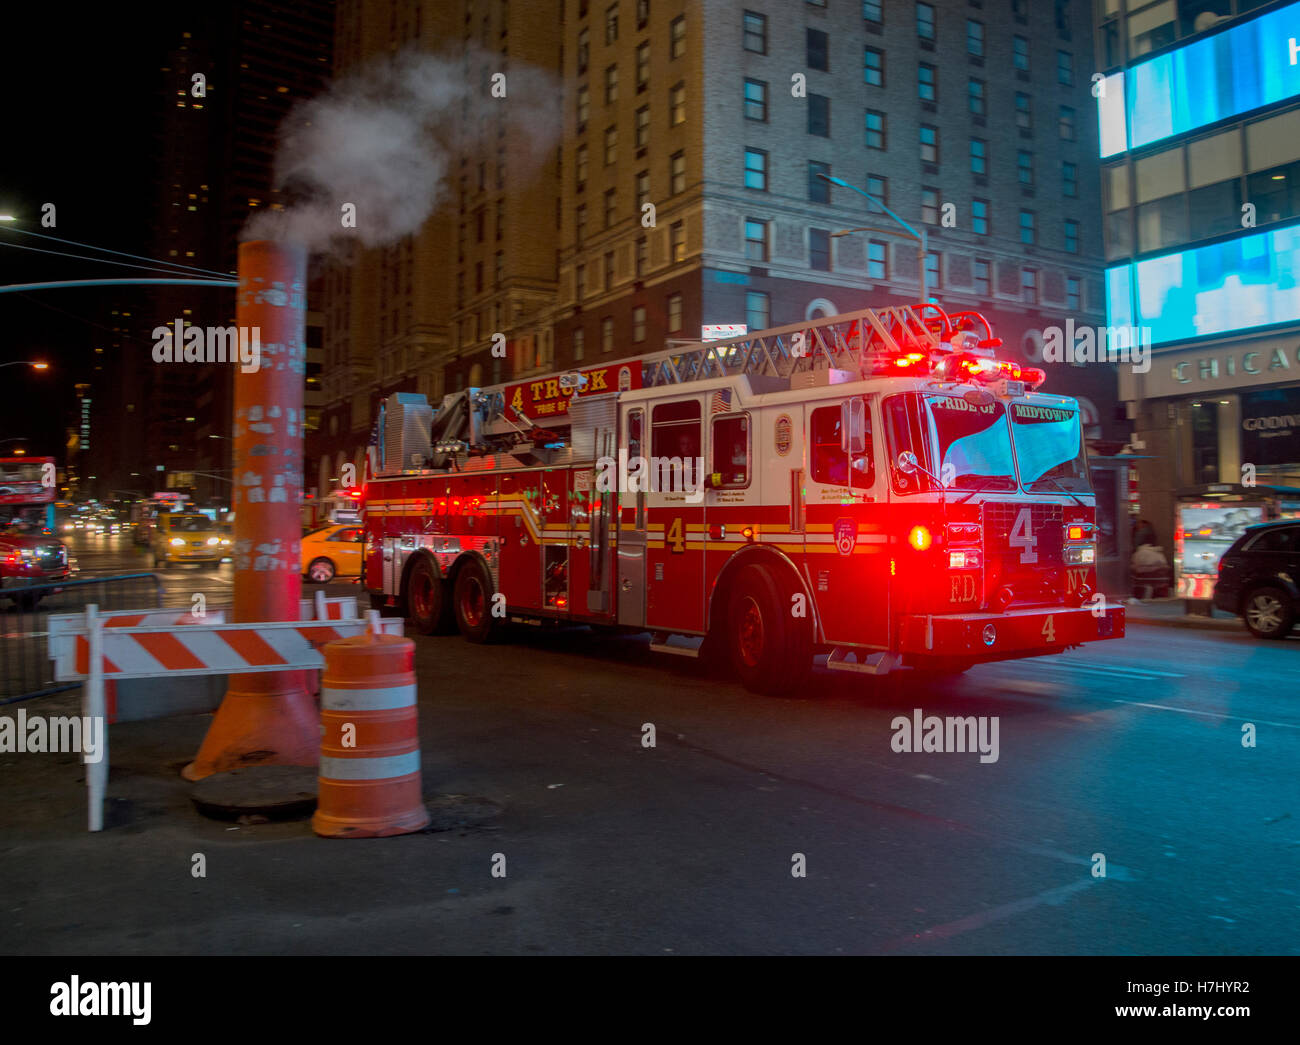 New York fire truck rushes past a steam vent on 7th Avenue - Stock Image